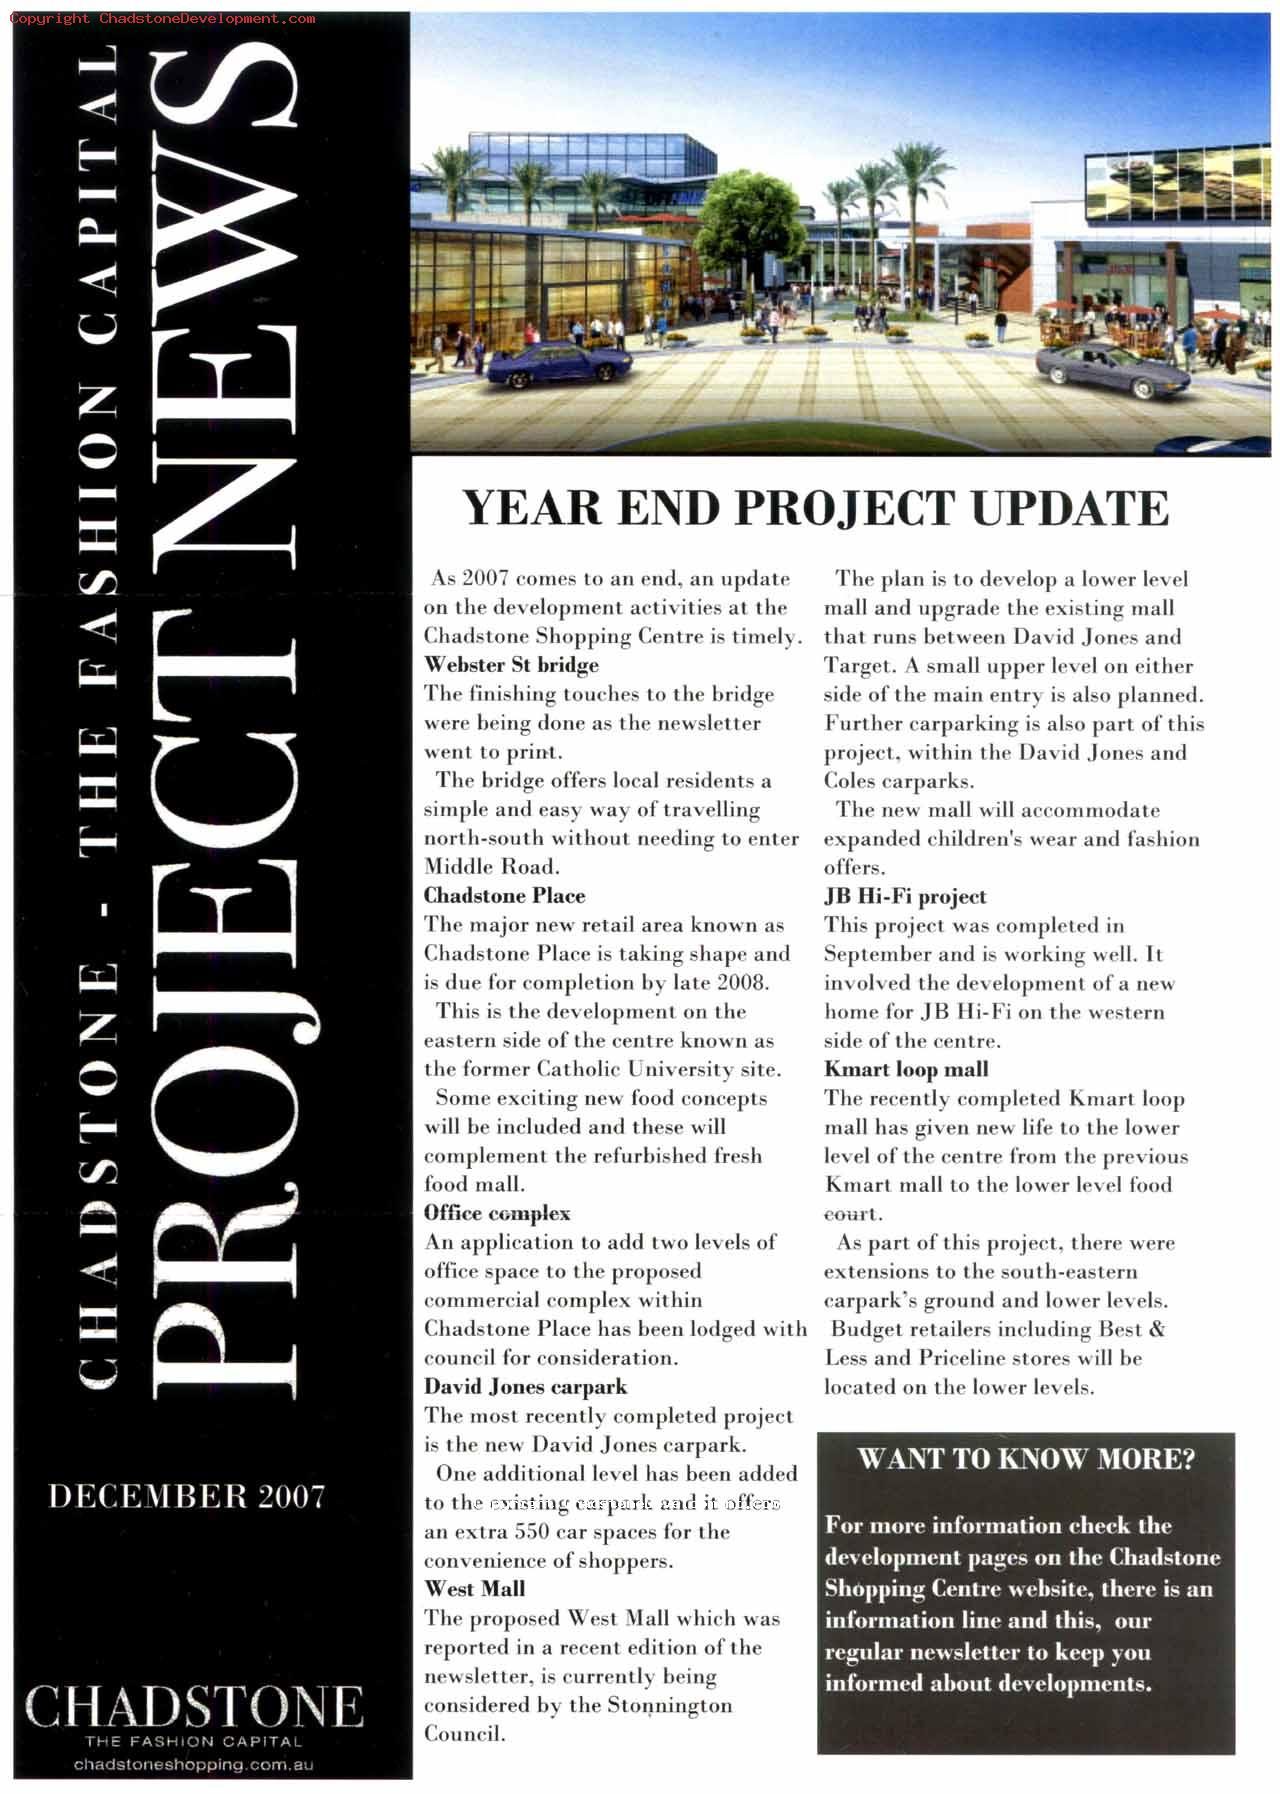 December 2007 (page 1) - Chadstone Development Discussions